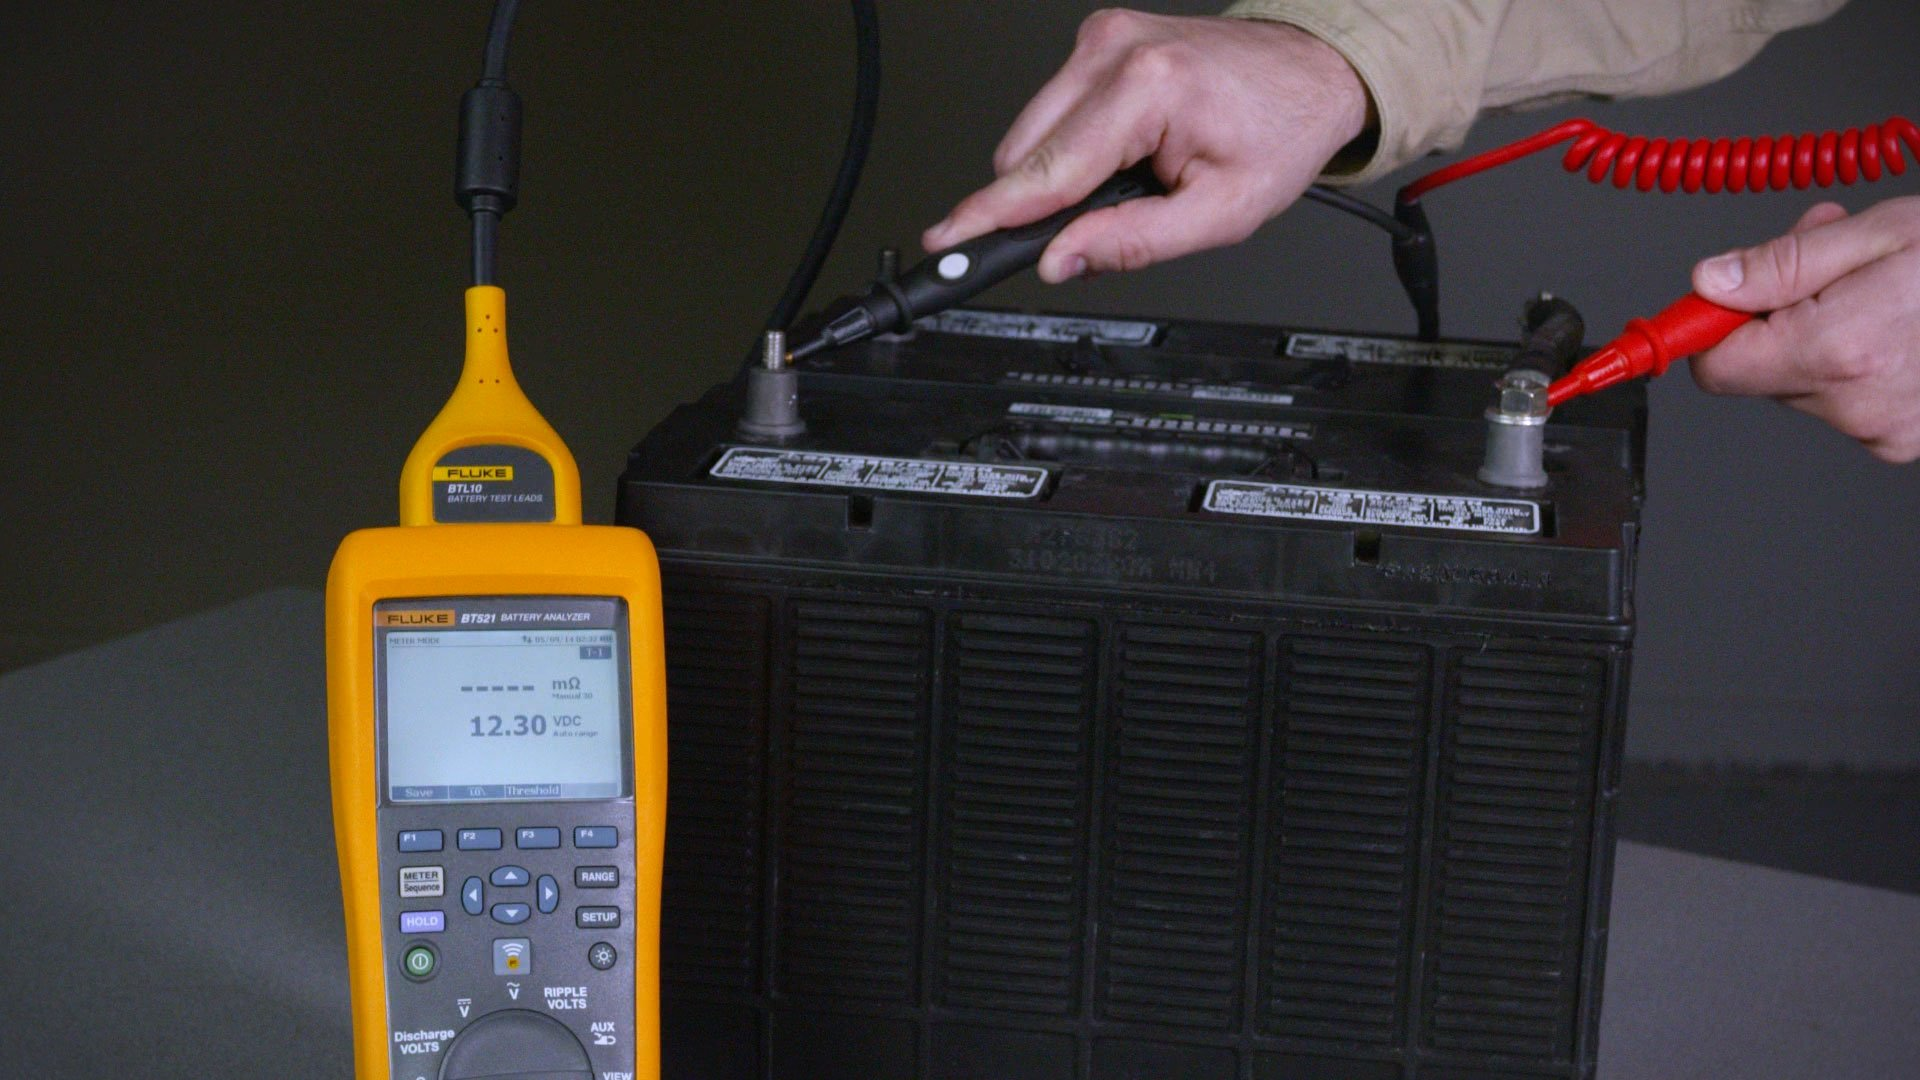 Fluke Training Library Demos Videos App Notes La Detailed Auto Topics Tips On Automotive Electrical Testing 500 Series Battery Analyzers Quick Demo